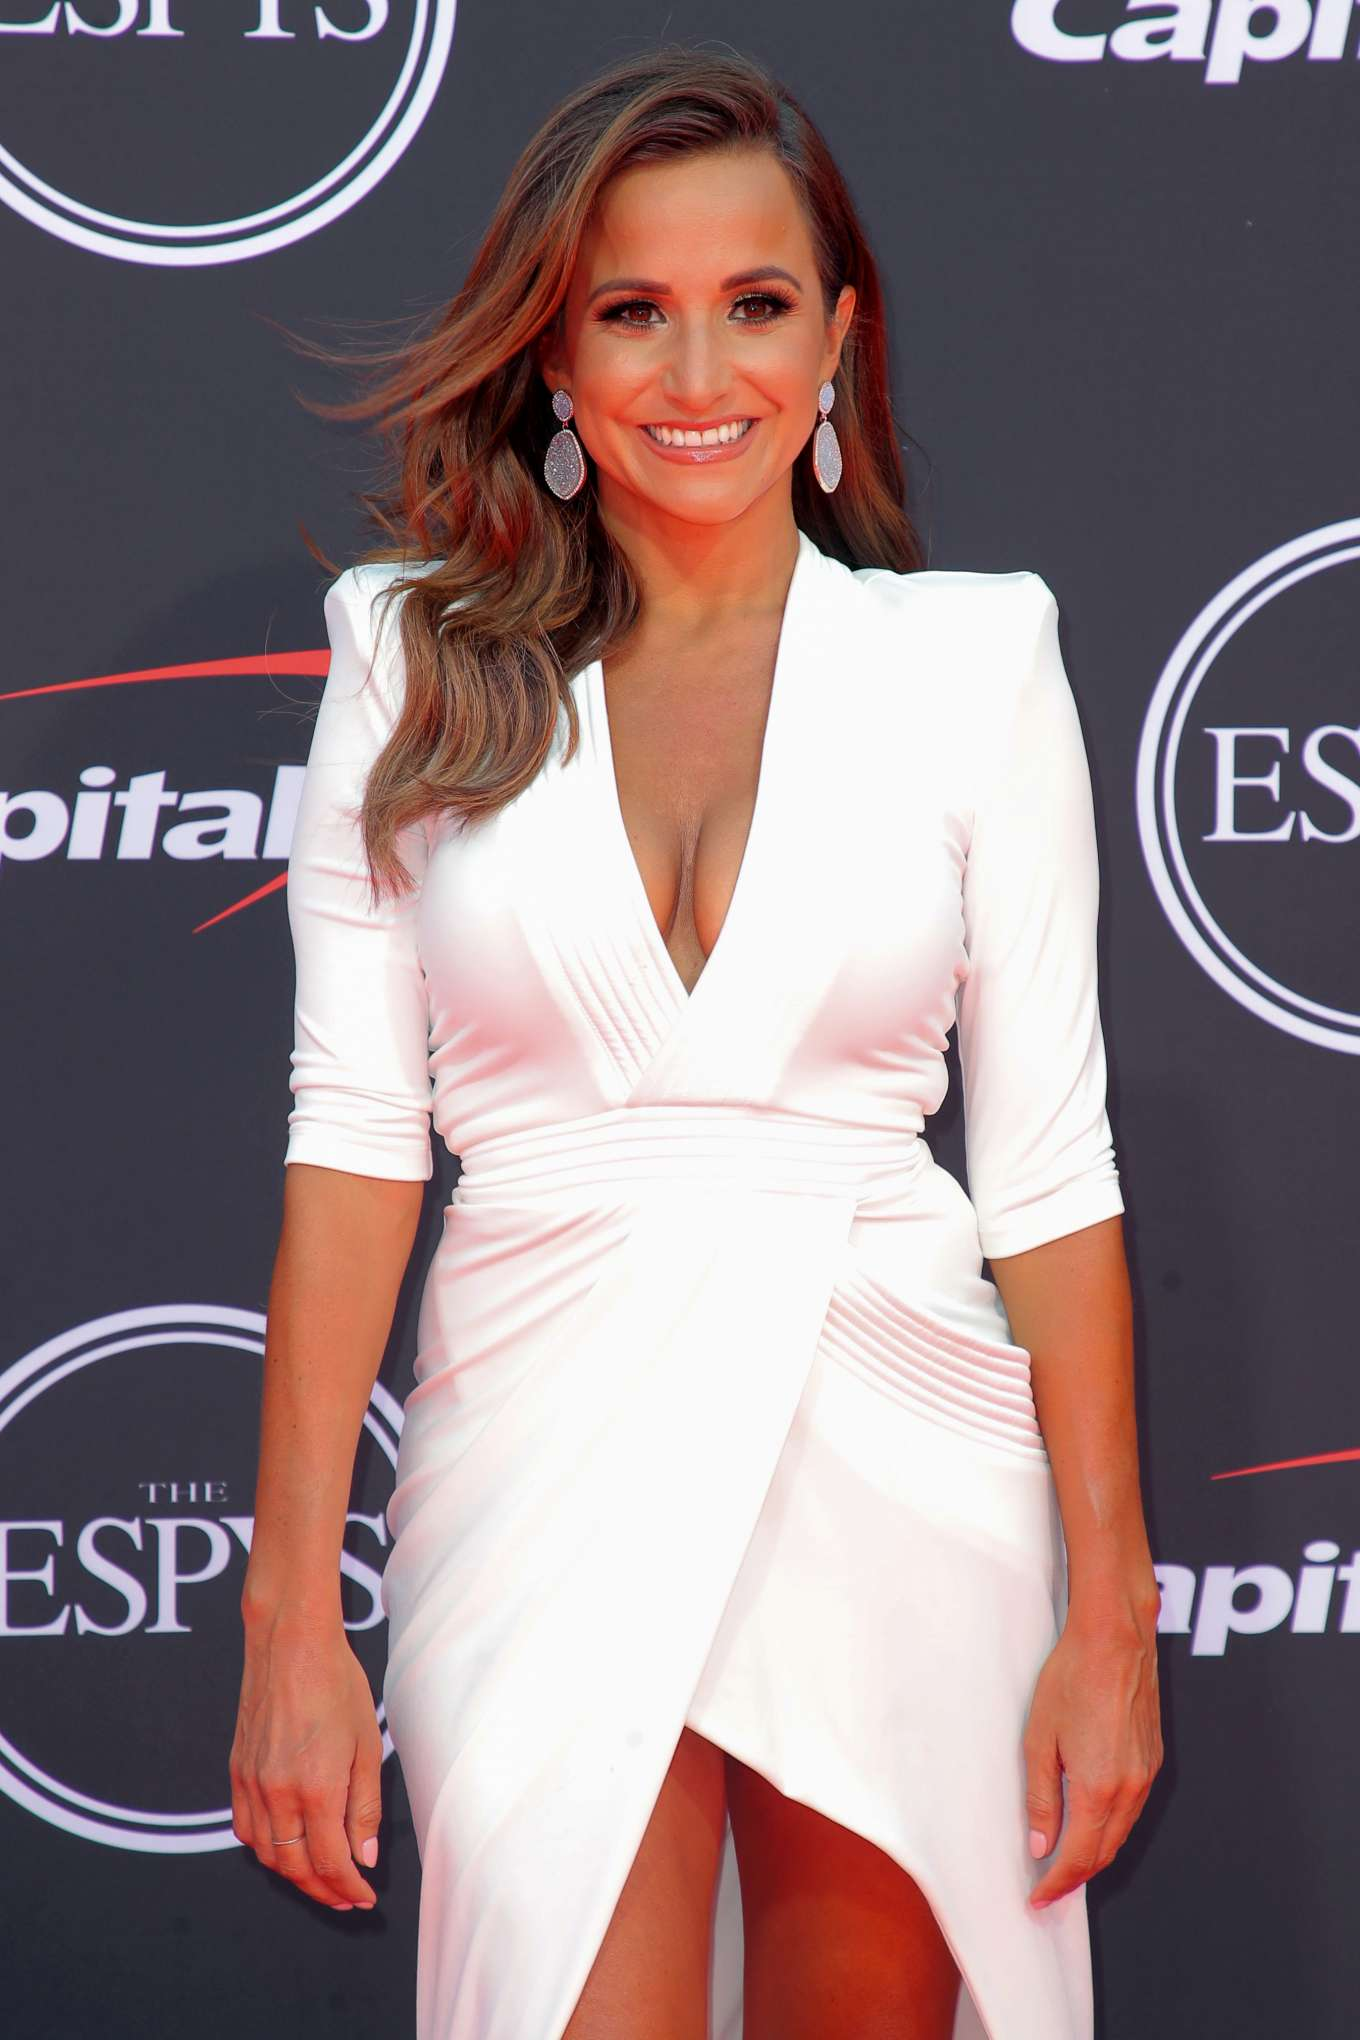 Dianna Russini pictures and photos